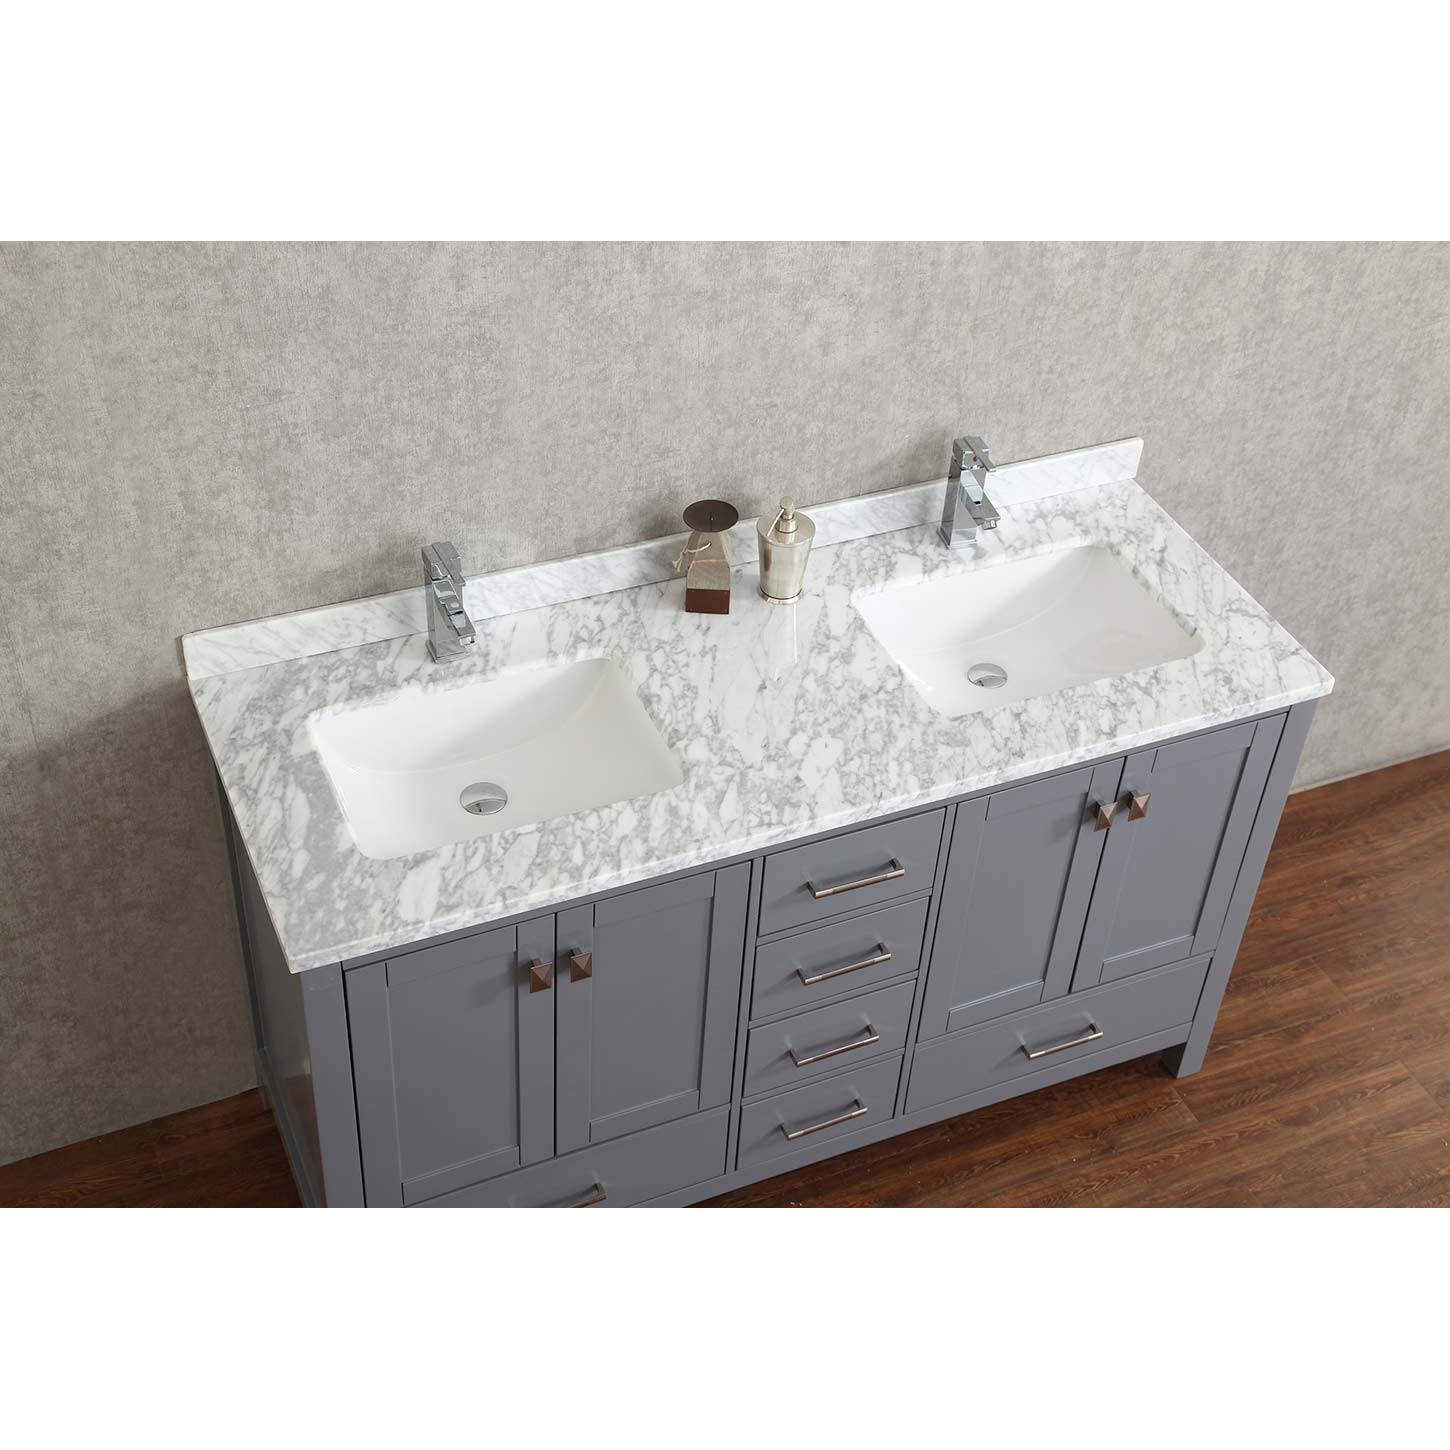 Buy vincent 60 solid wood double bathroom vanity in charcoal grey hm 13001 60 wmsq cg for Solid wood double sink bathroom vanity